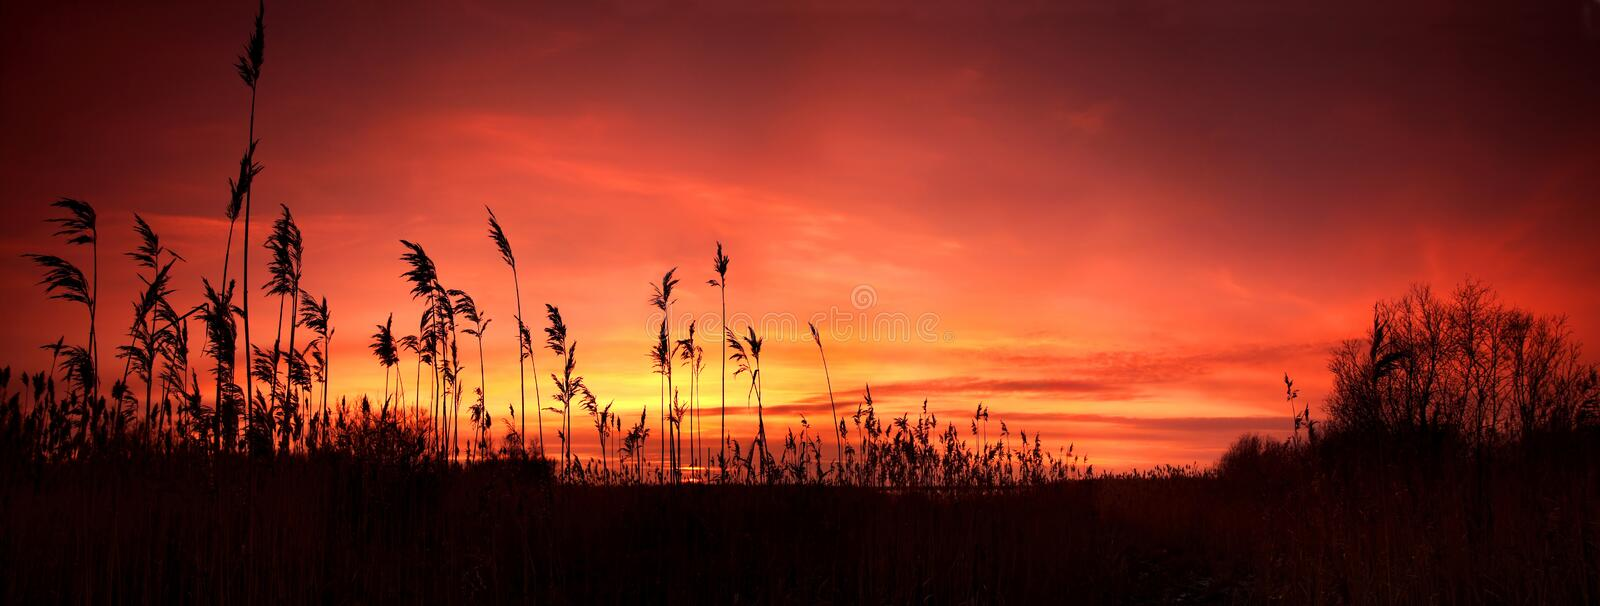 Panorama sunset royalty free stock images